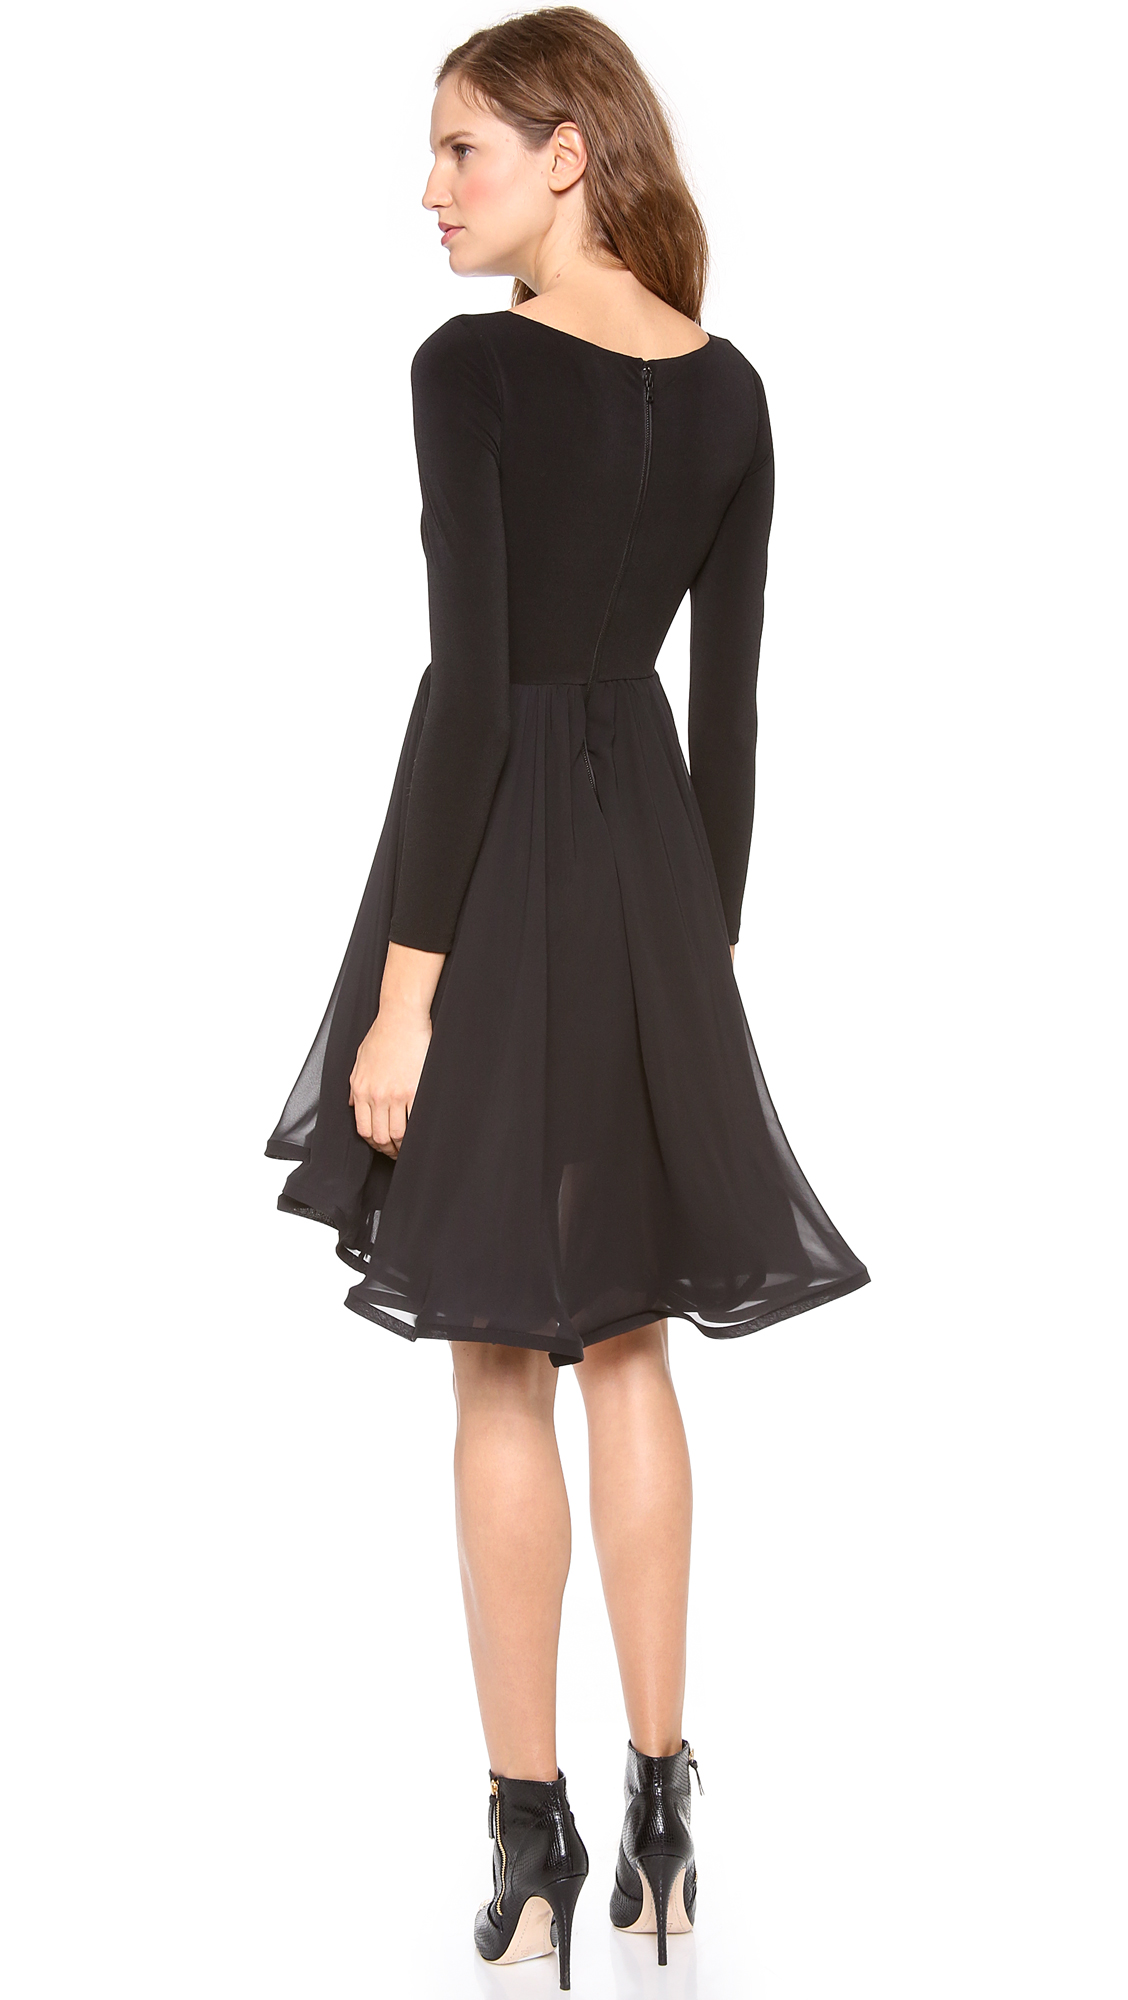 Alice And Olivia Black And White Long Sleeve Dress